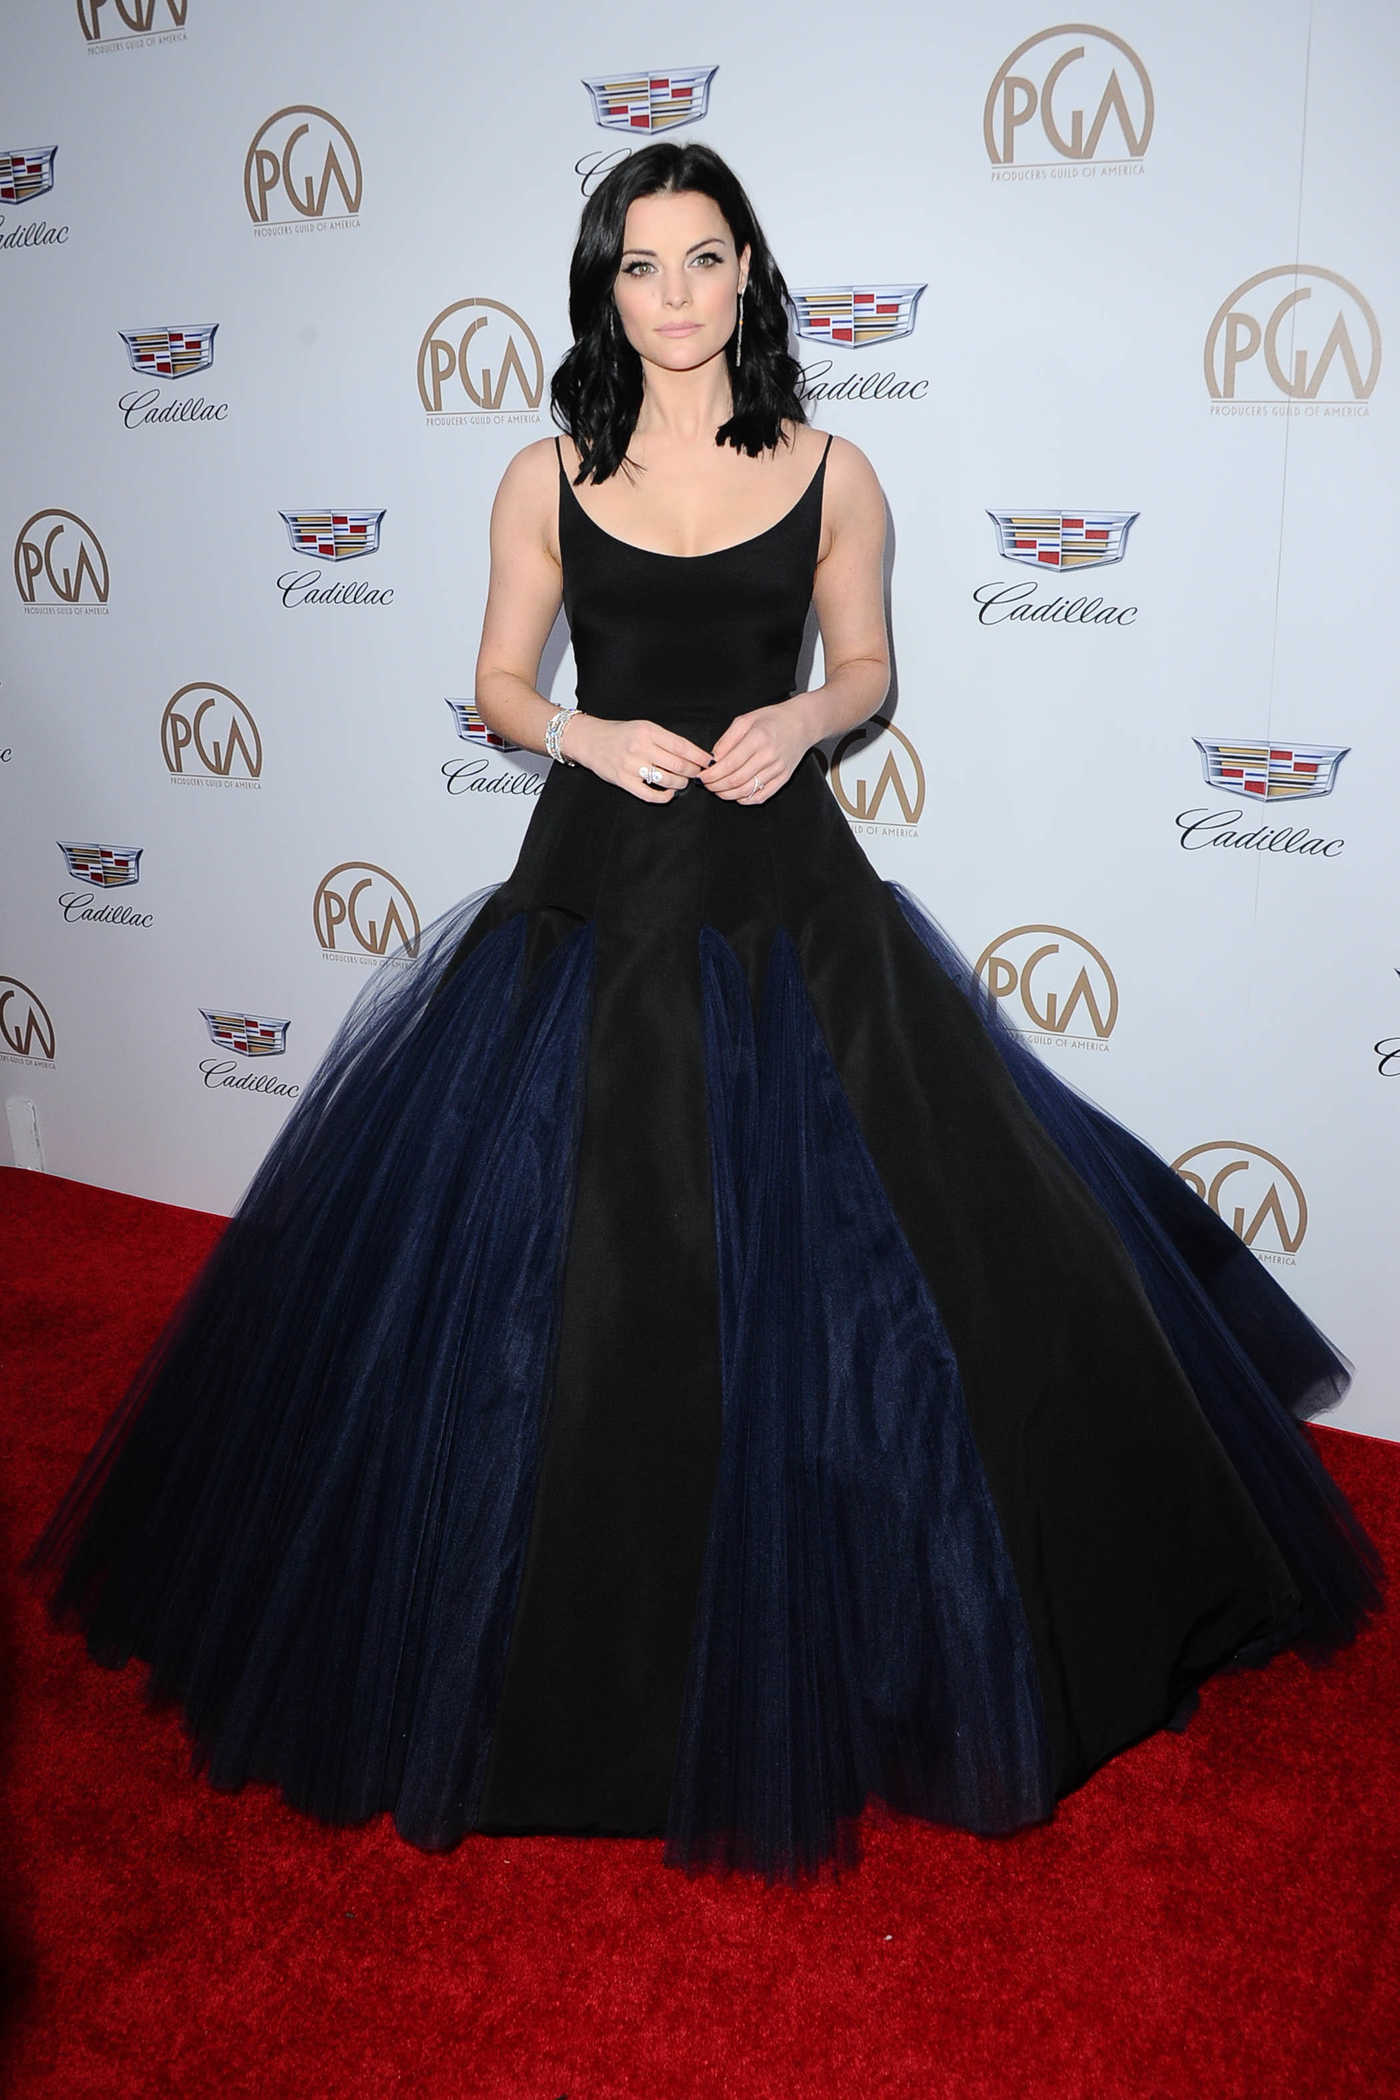 Jaimie Alexander Attends the 29th Annual Producers Guild Awards in Beverly Hills 01/20/2018